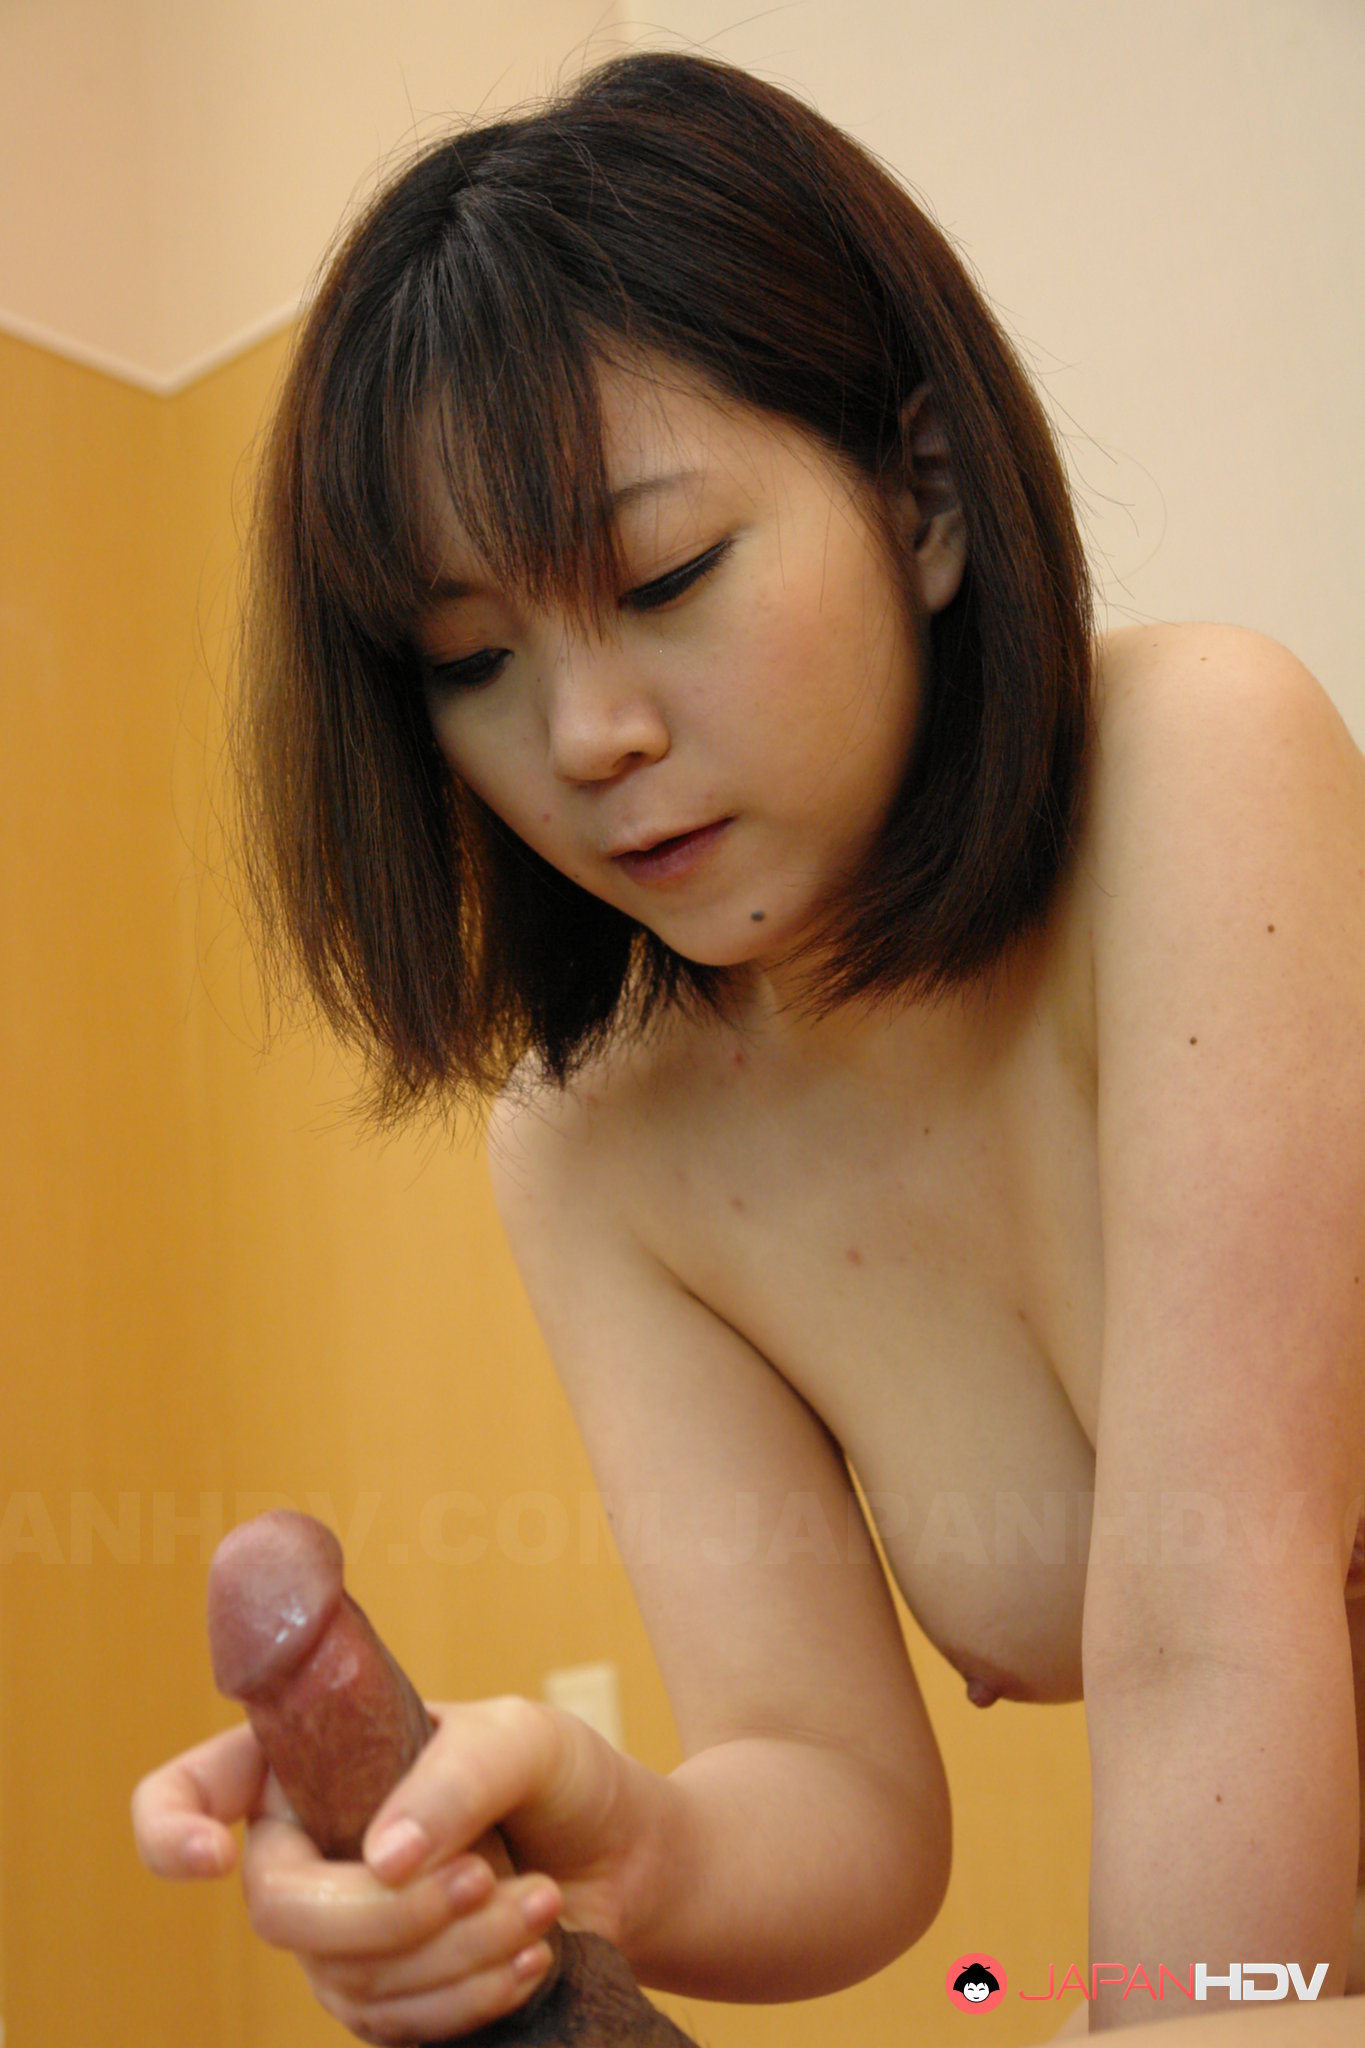 Are mistaken. Japanese lady in naked thought